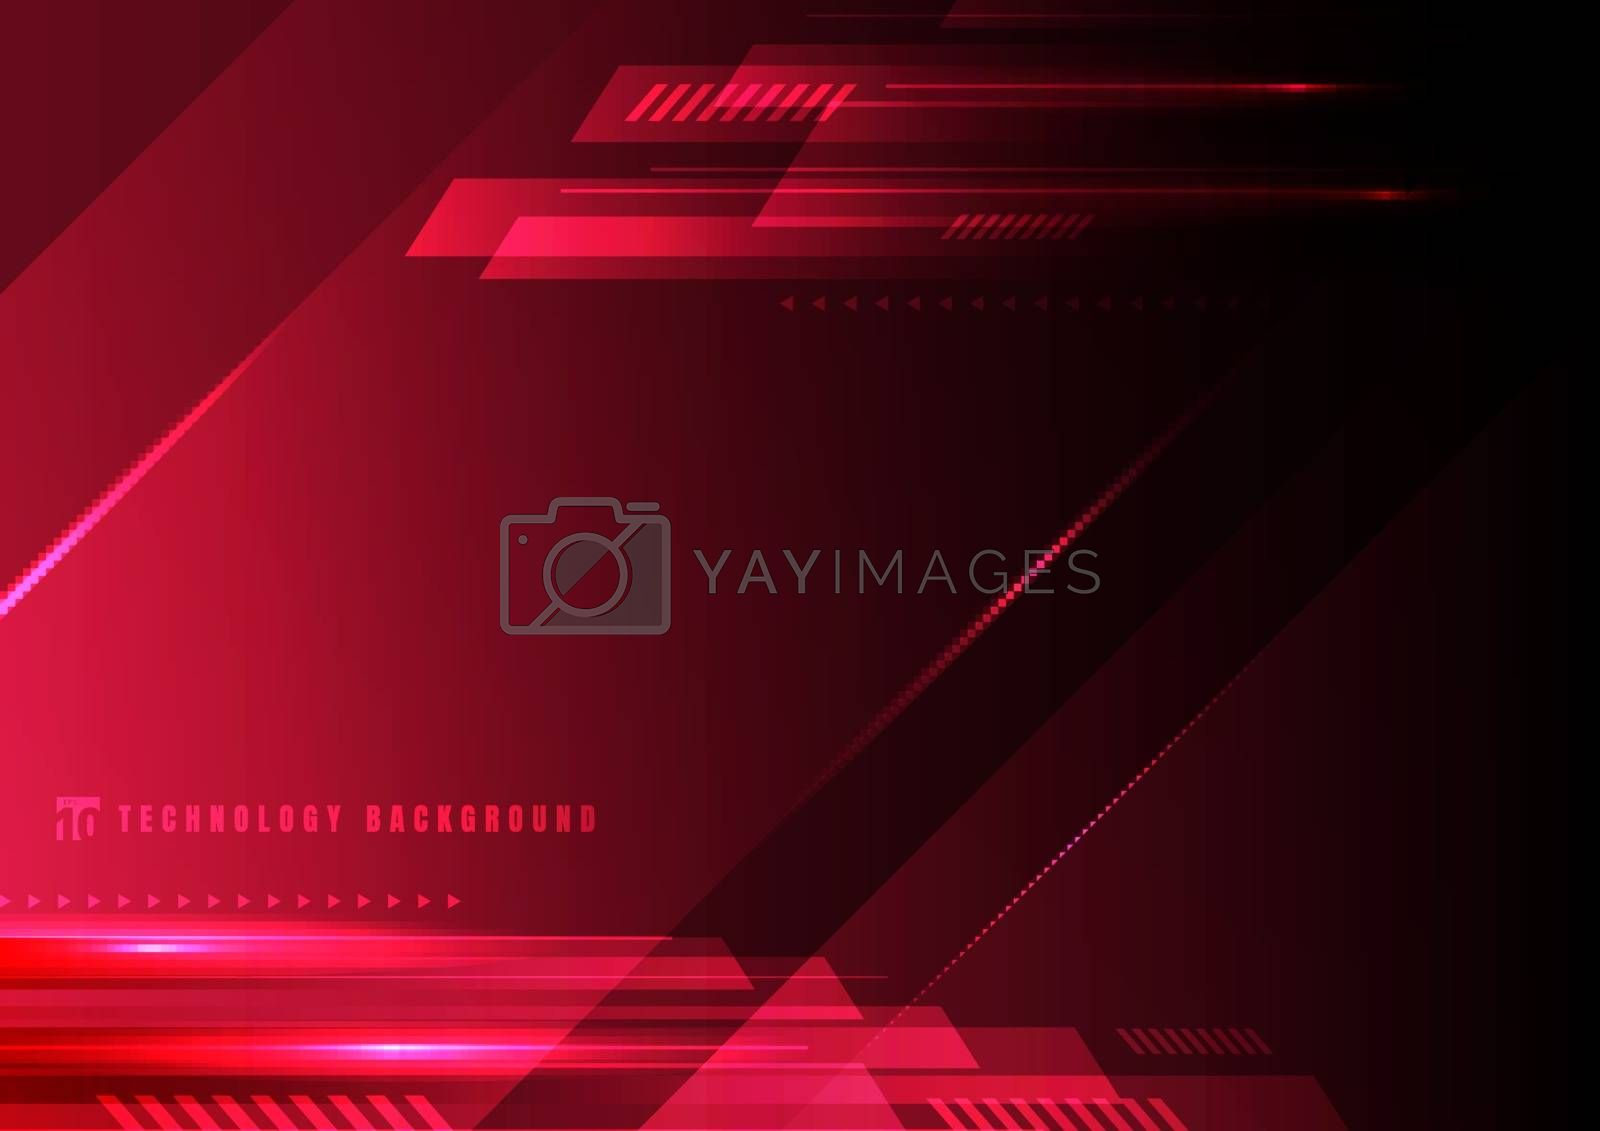 Abstract technology geometric red and black color shiny motion background. Template with header and footer for brochure, print, ad, magazine, poster, website, magazine, leaflet, annual report. Vector corporate design